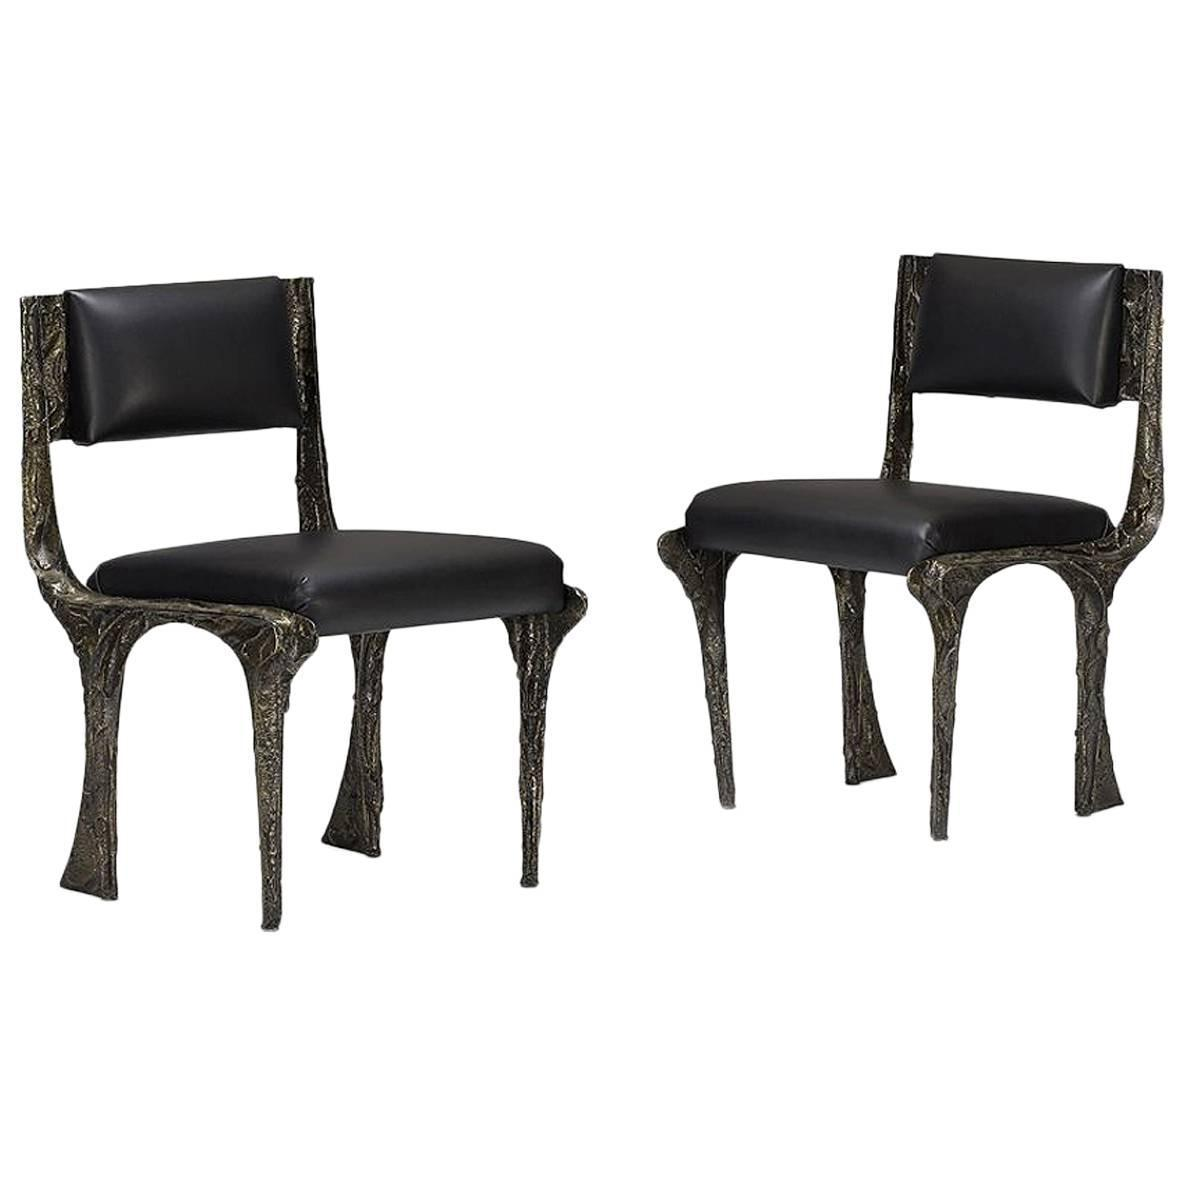 Pair of Sculpted Bronze Chairs by Paul Evans at 1stdibs